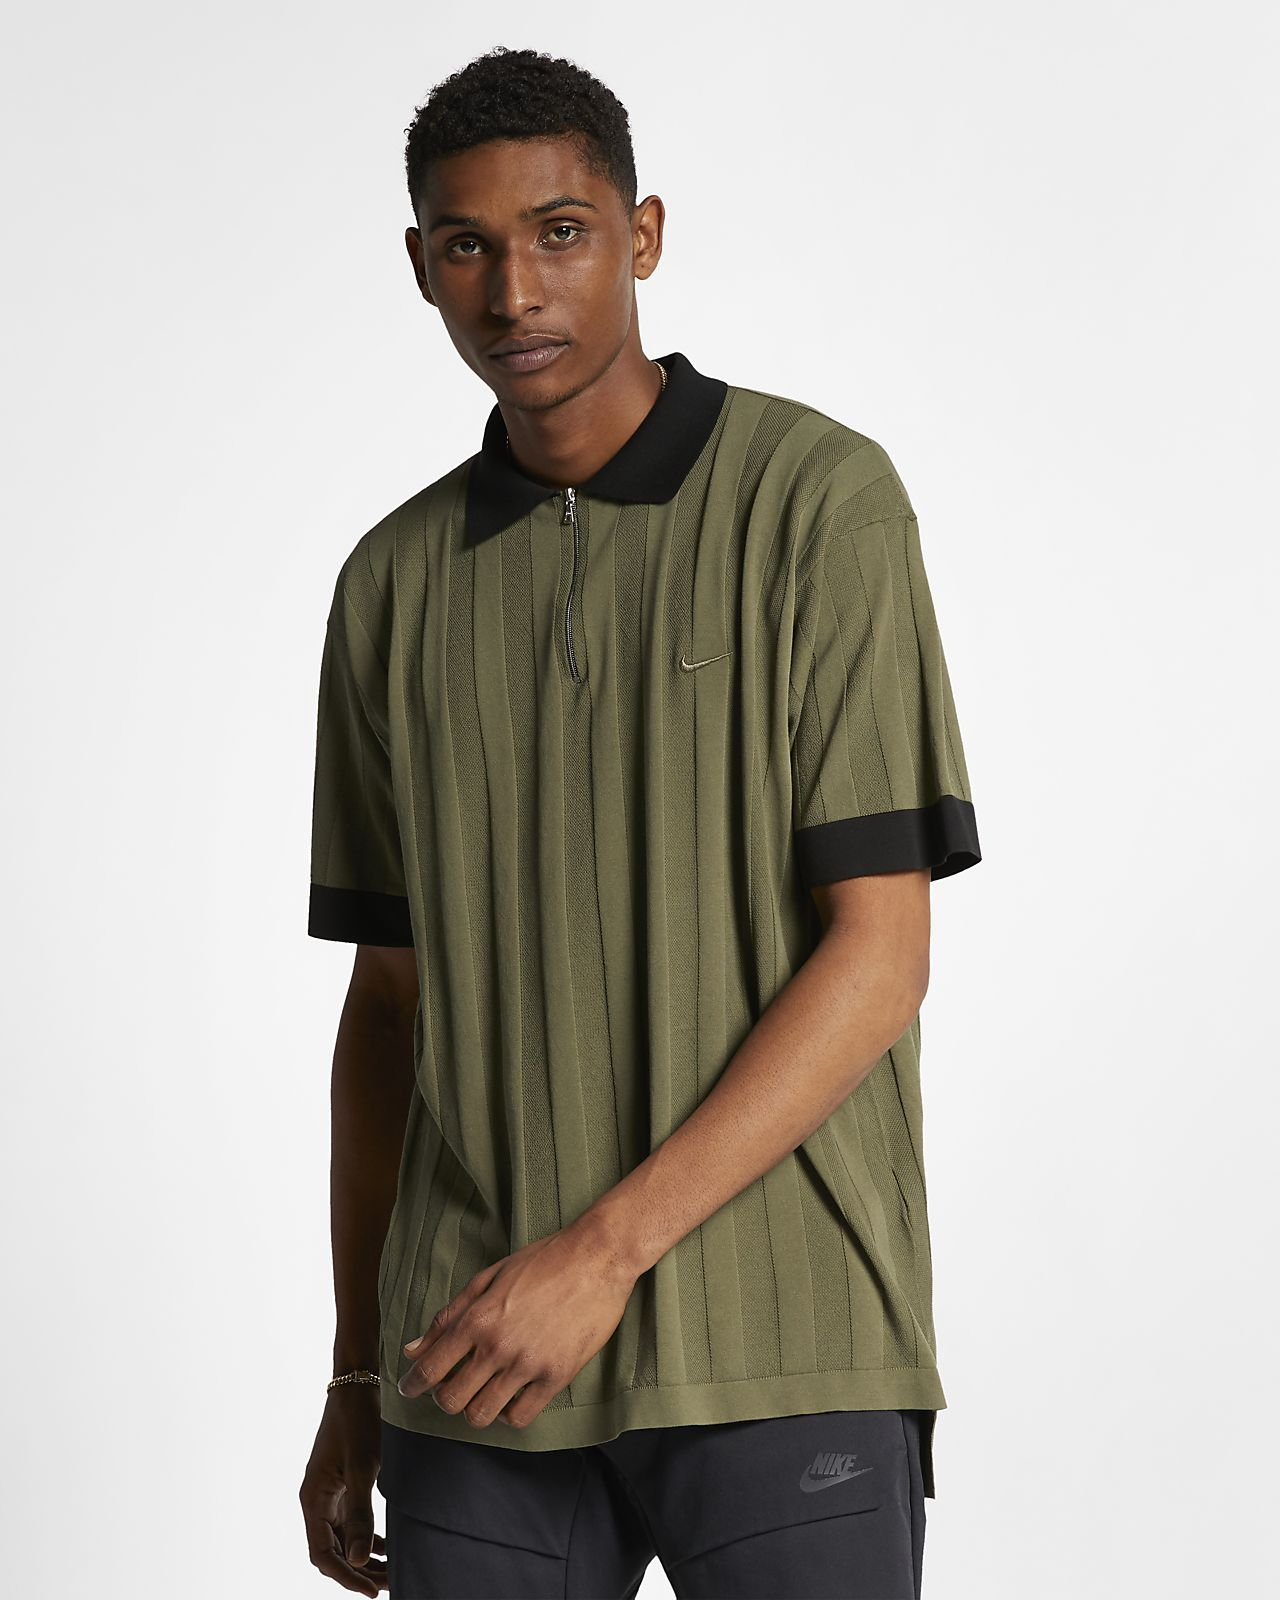 NikeLab Made in Italy Collection Men's Knit Polo